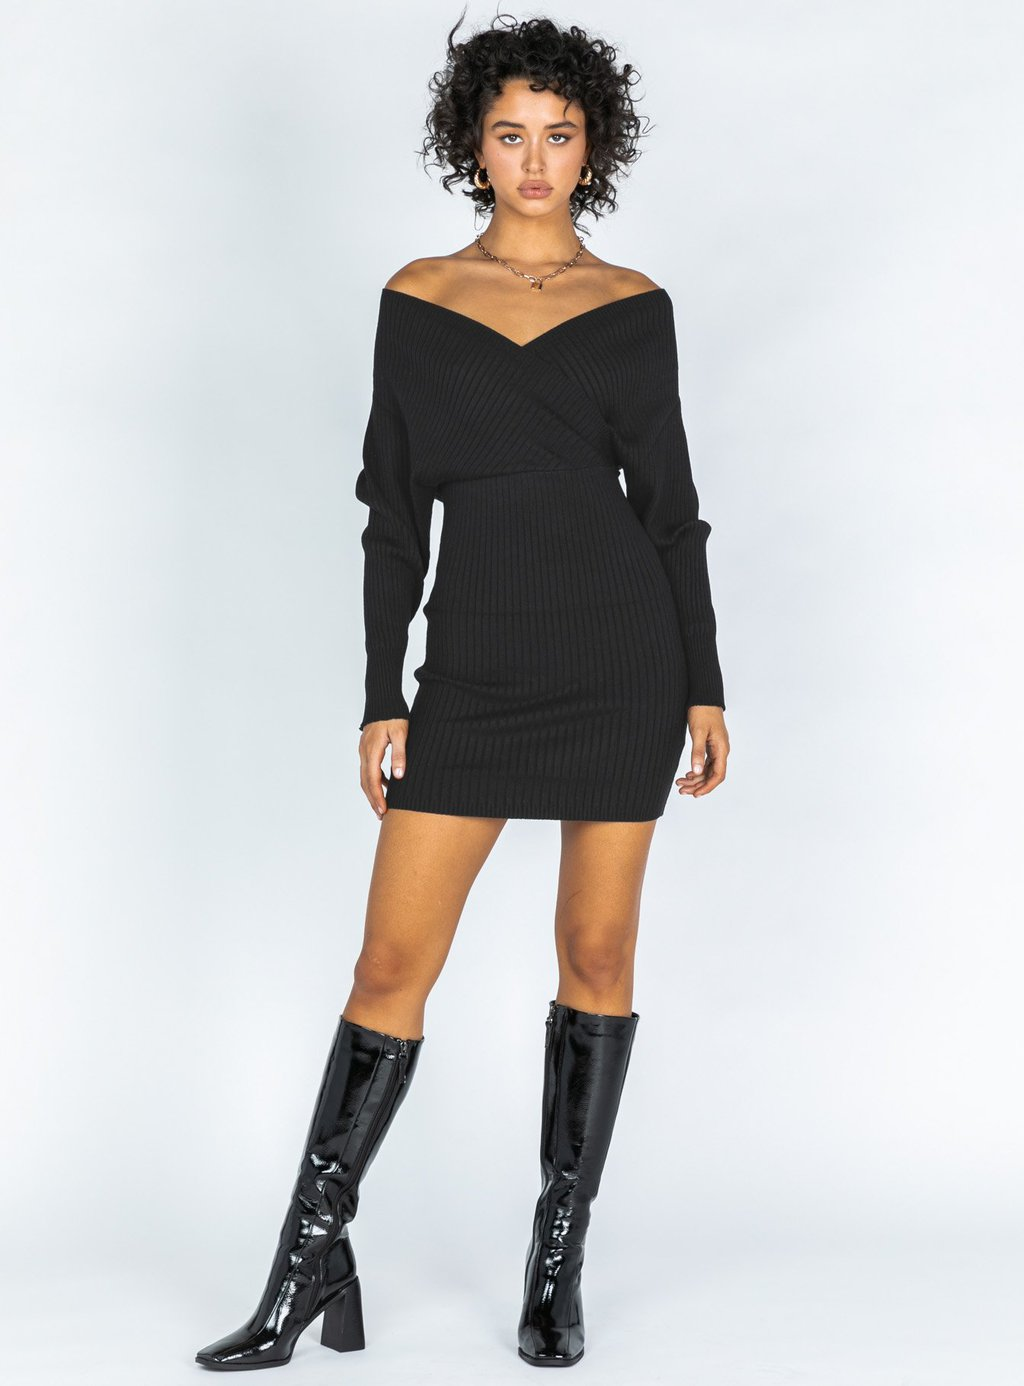 Kaia mini sweater dress from Princess Polly